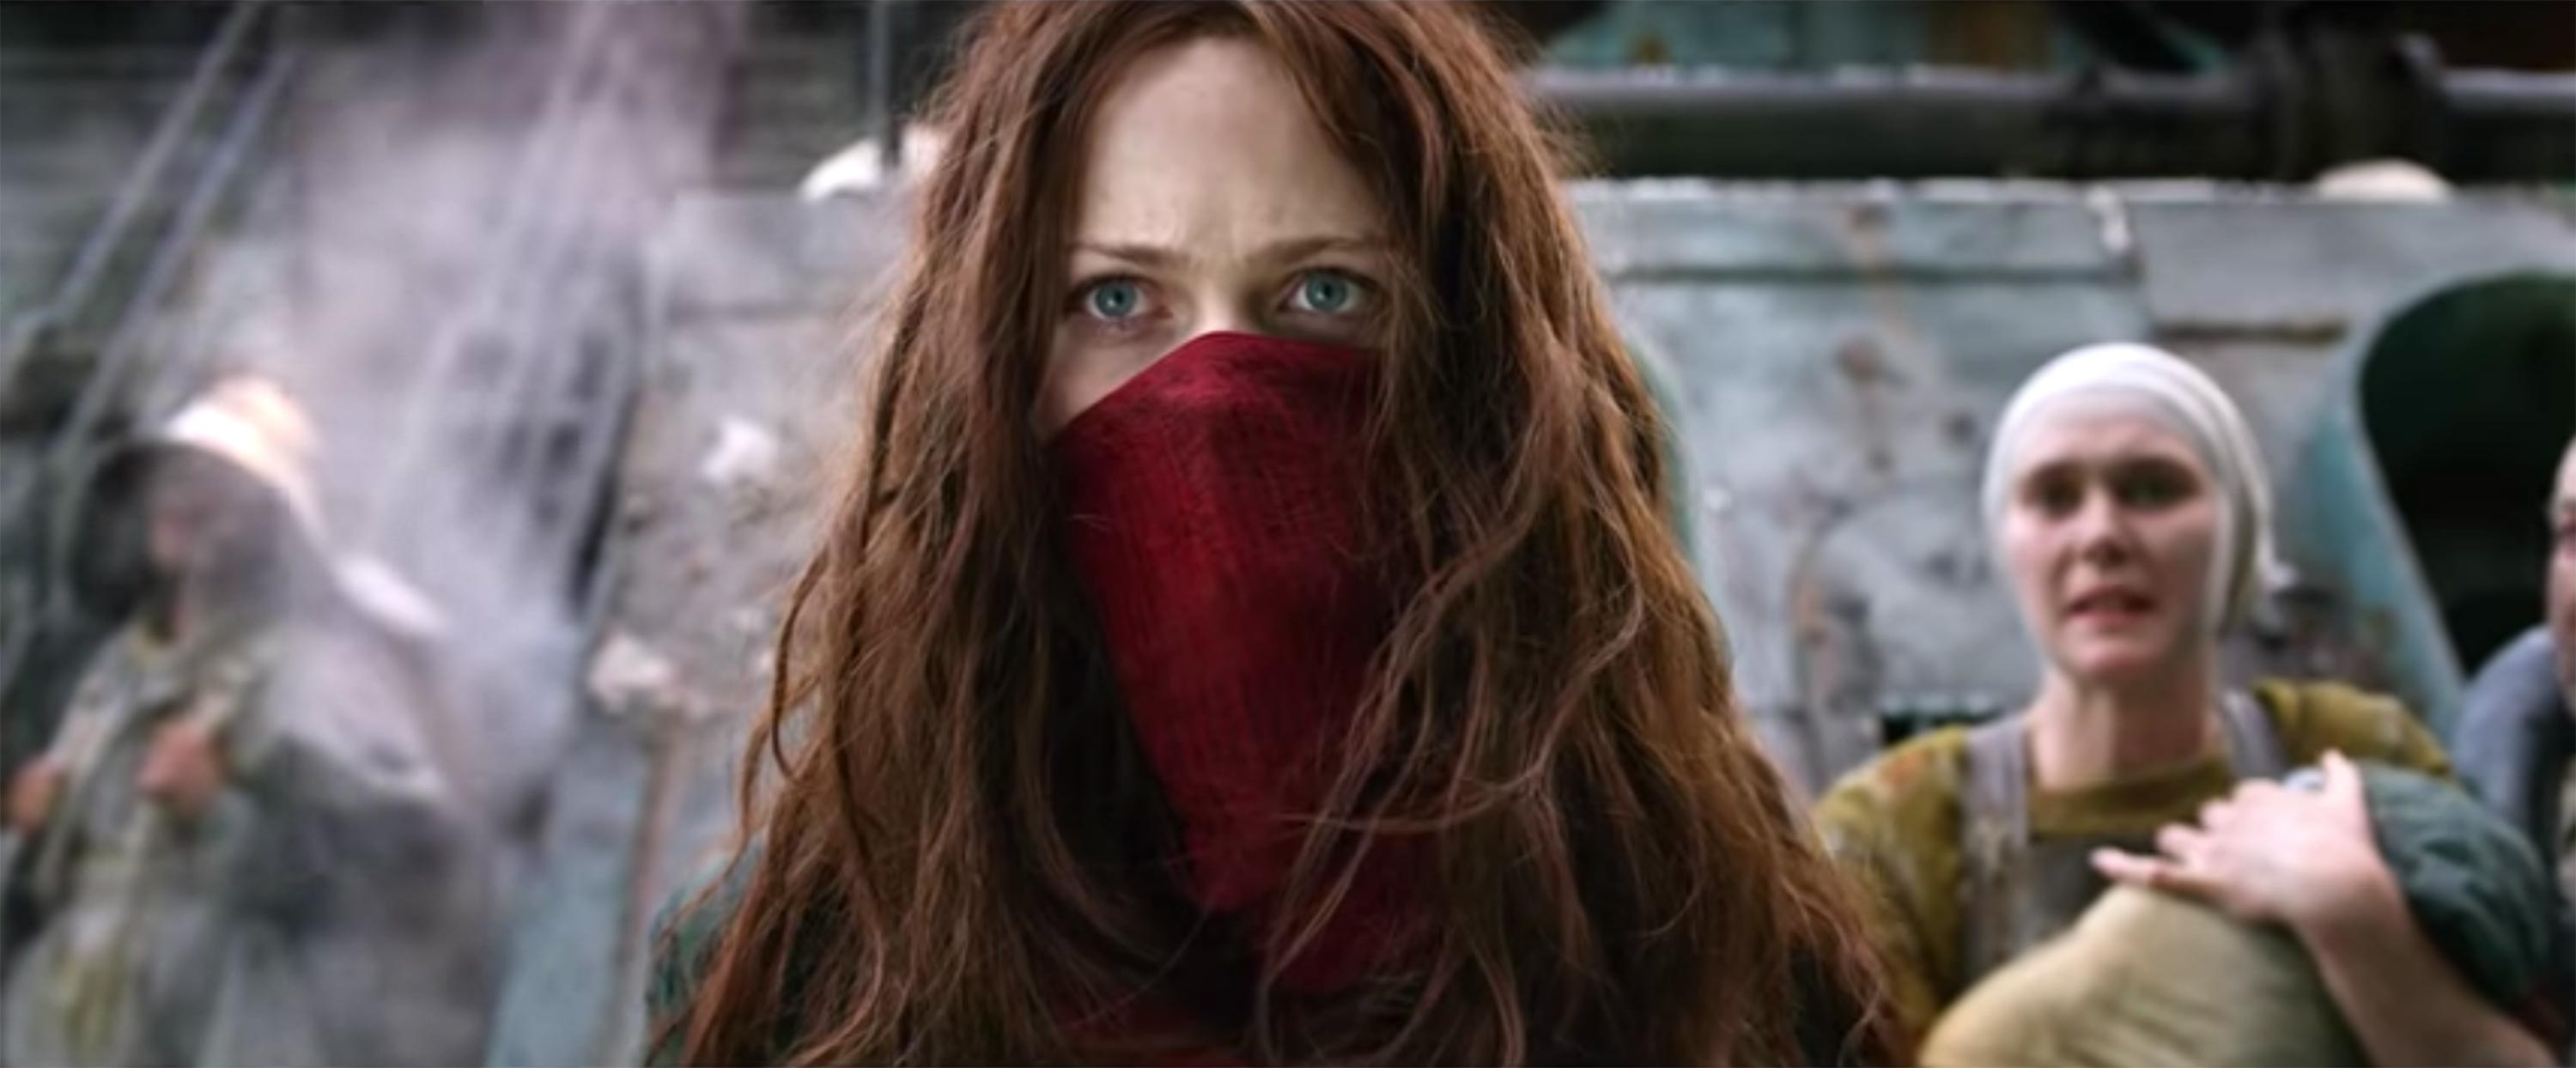 peter jackson returns with mortal engines trailer plus new images 2018 images